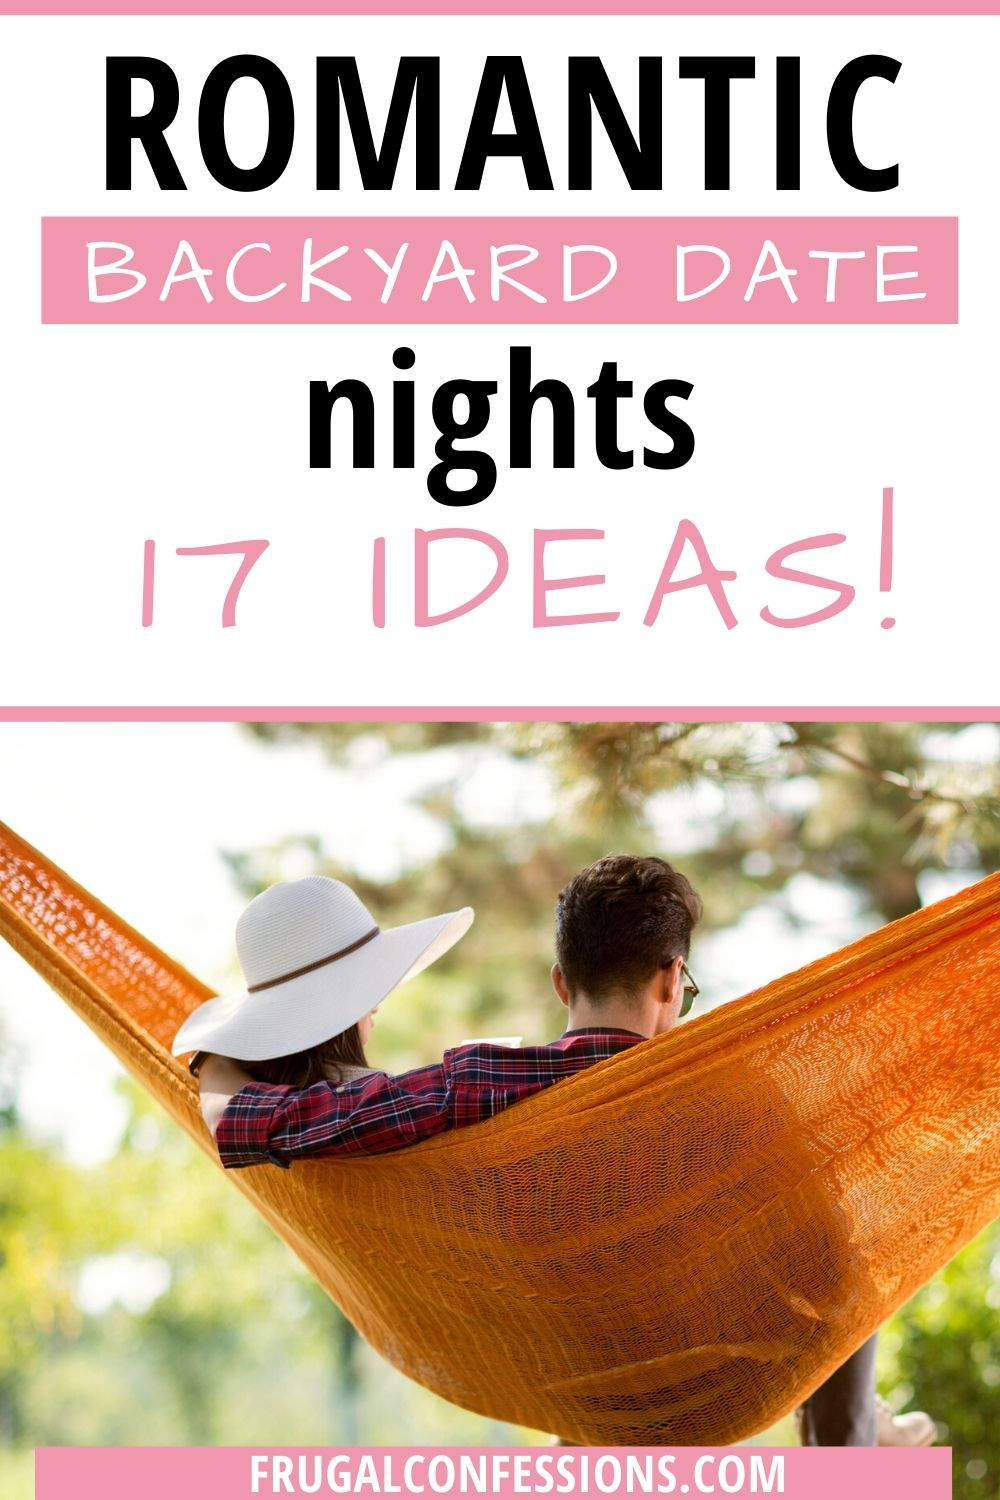 17 Stay At Home Date Ideas for Couples (In Your Backyard